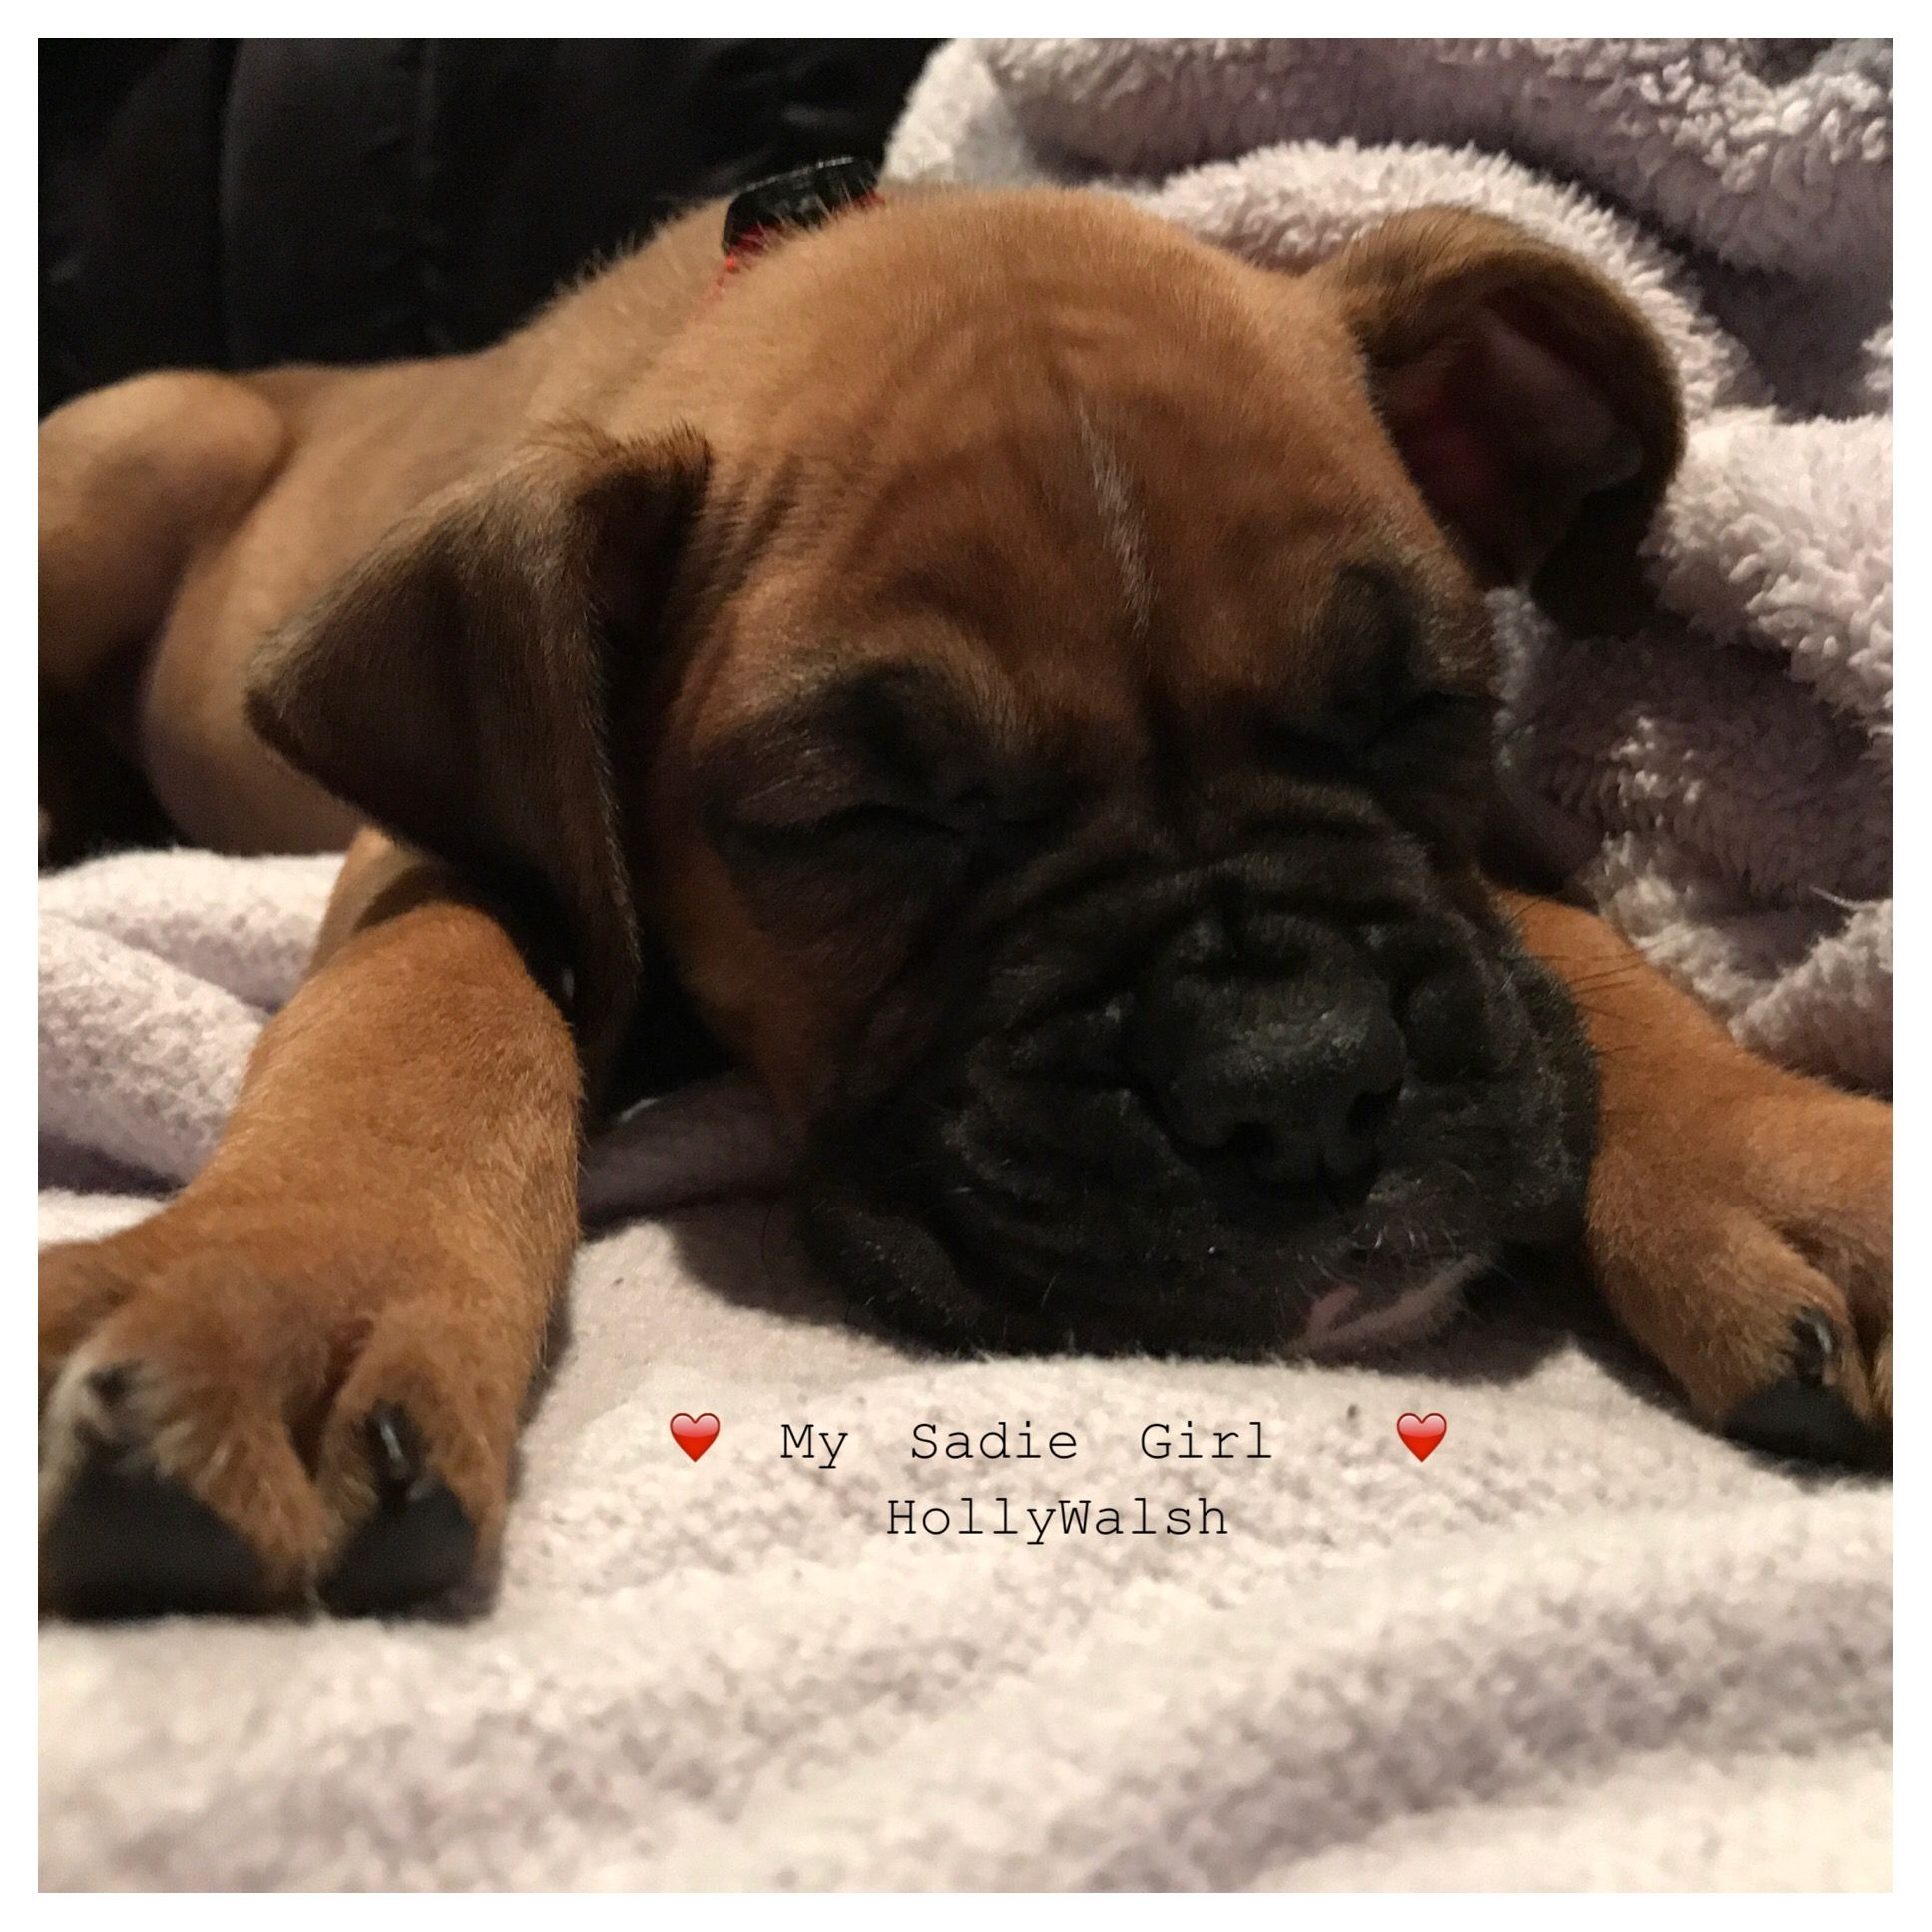 7 week old boxer pup. Lover here to pieces